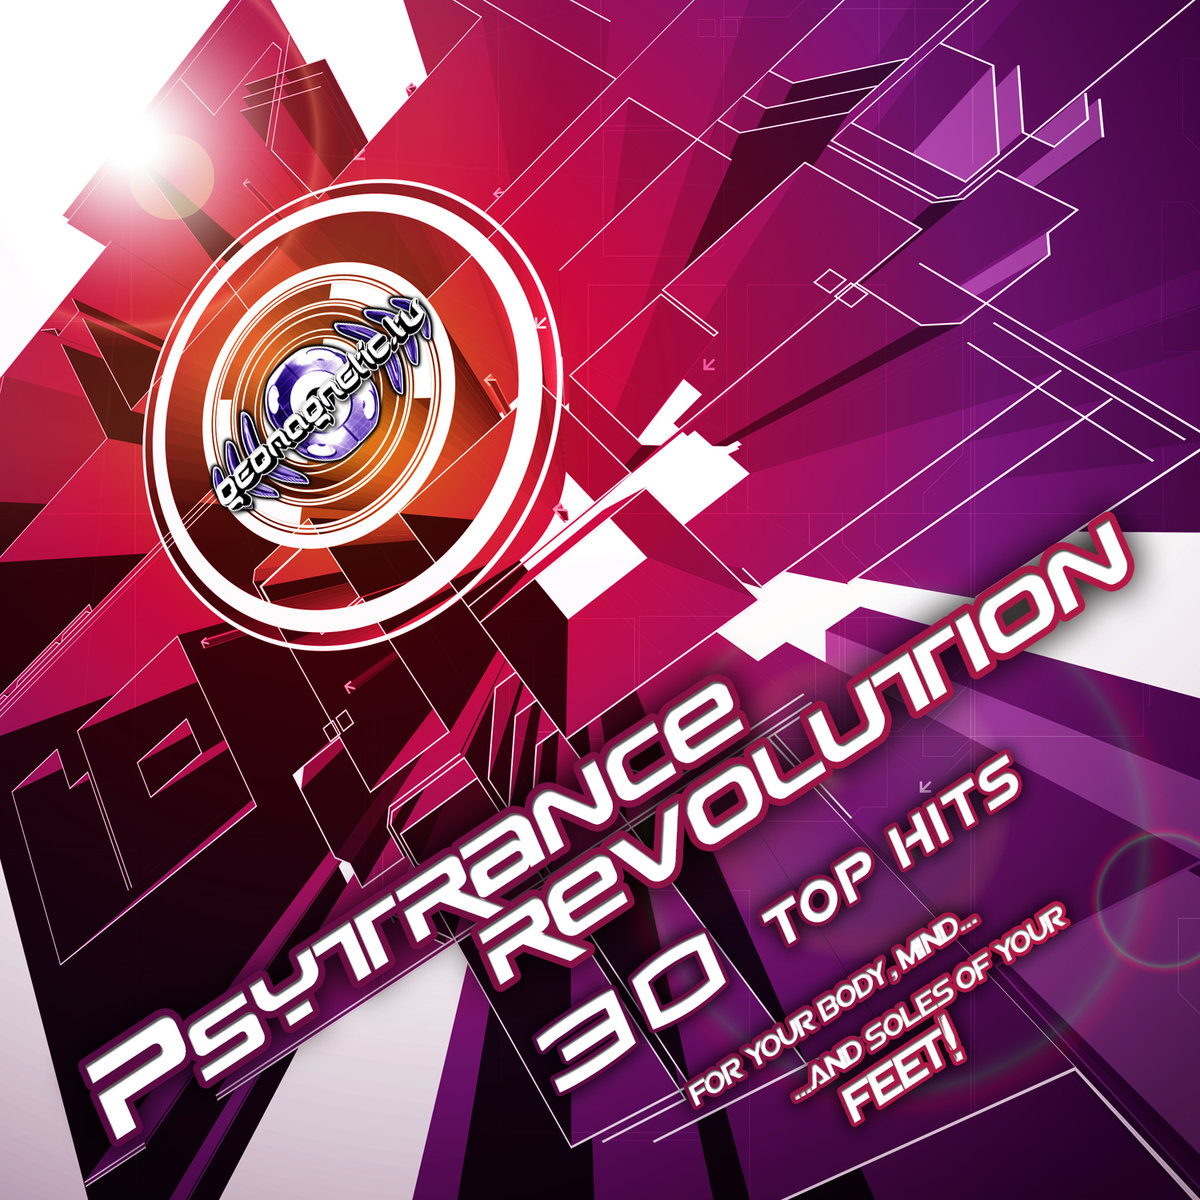 Roboteknic - Psyren Song @ 'Various Artists - Psytrance Revolution (30 Top Hits)' album (electronic, goa)